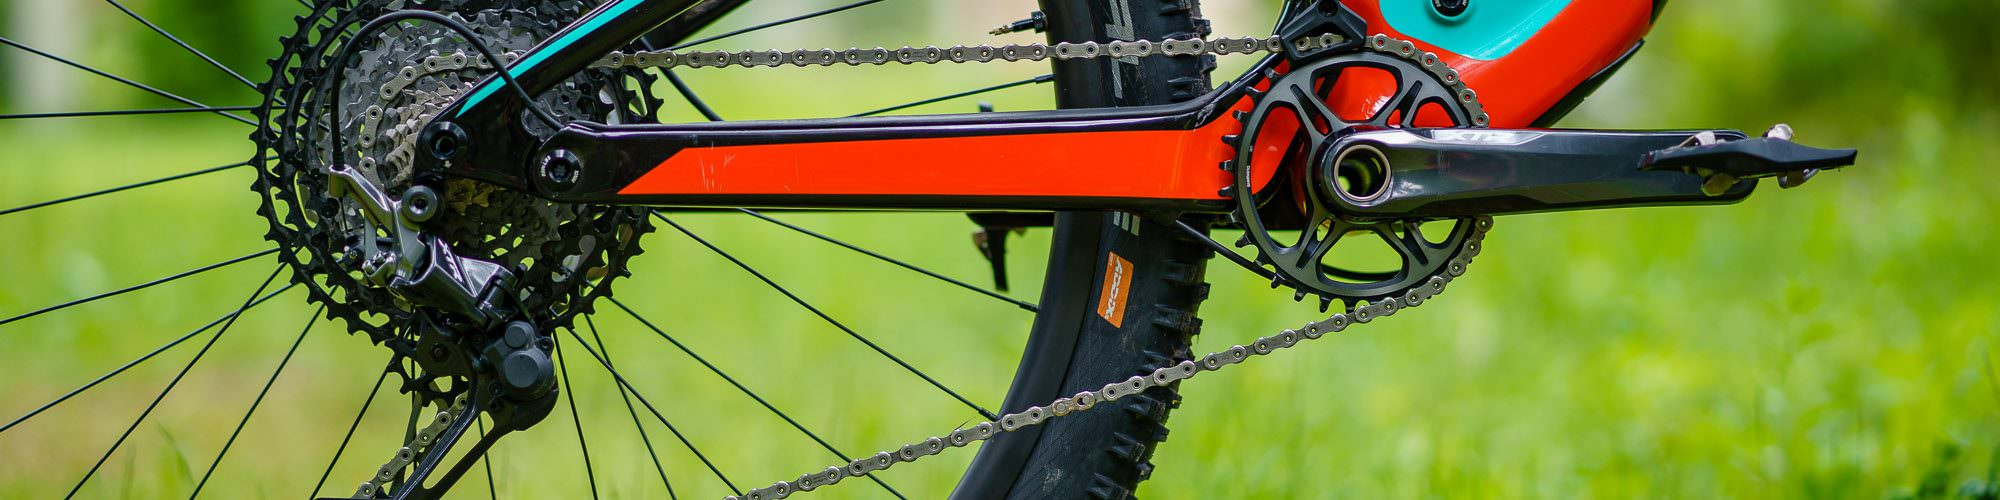 First ride review: Shimano XTR M9100 12-speed drivetrain and